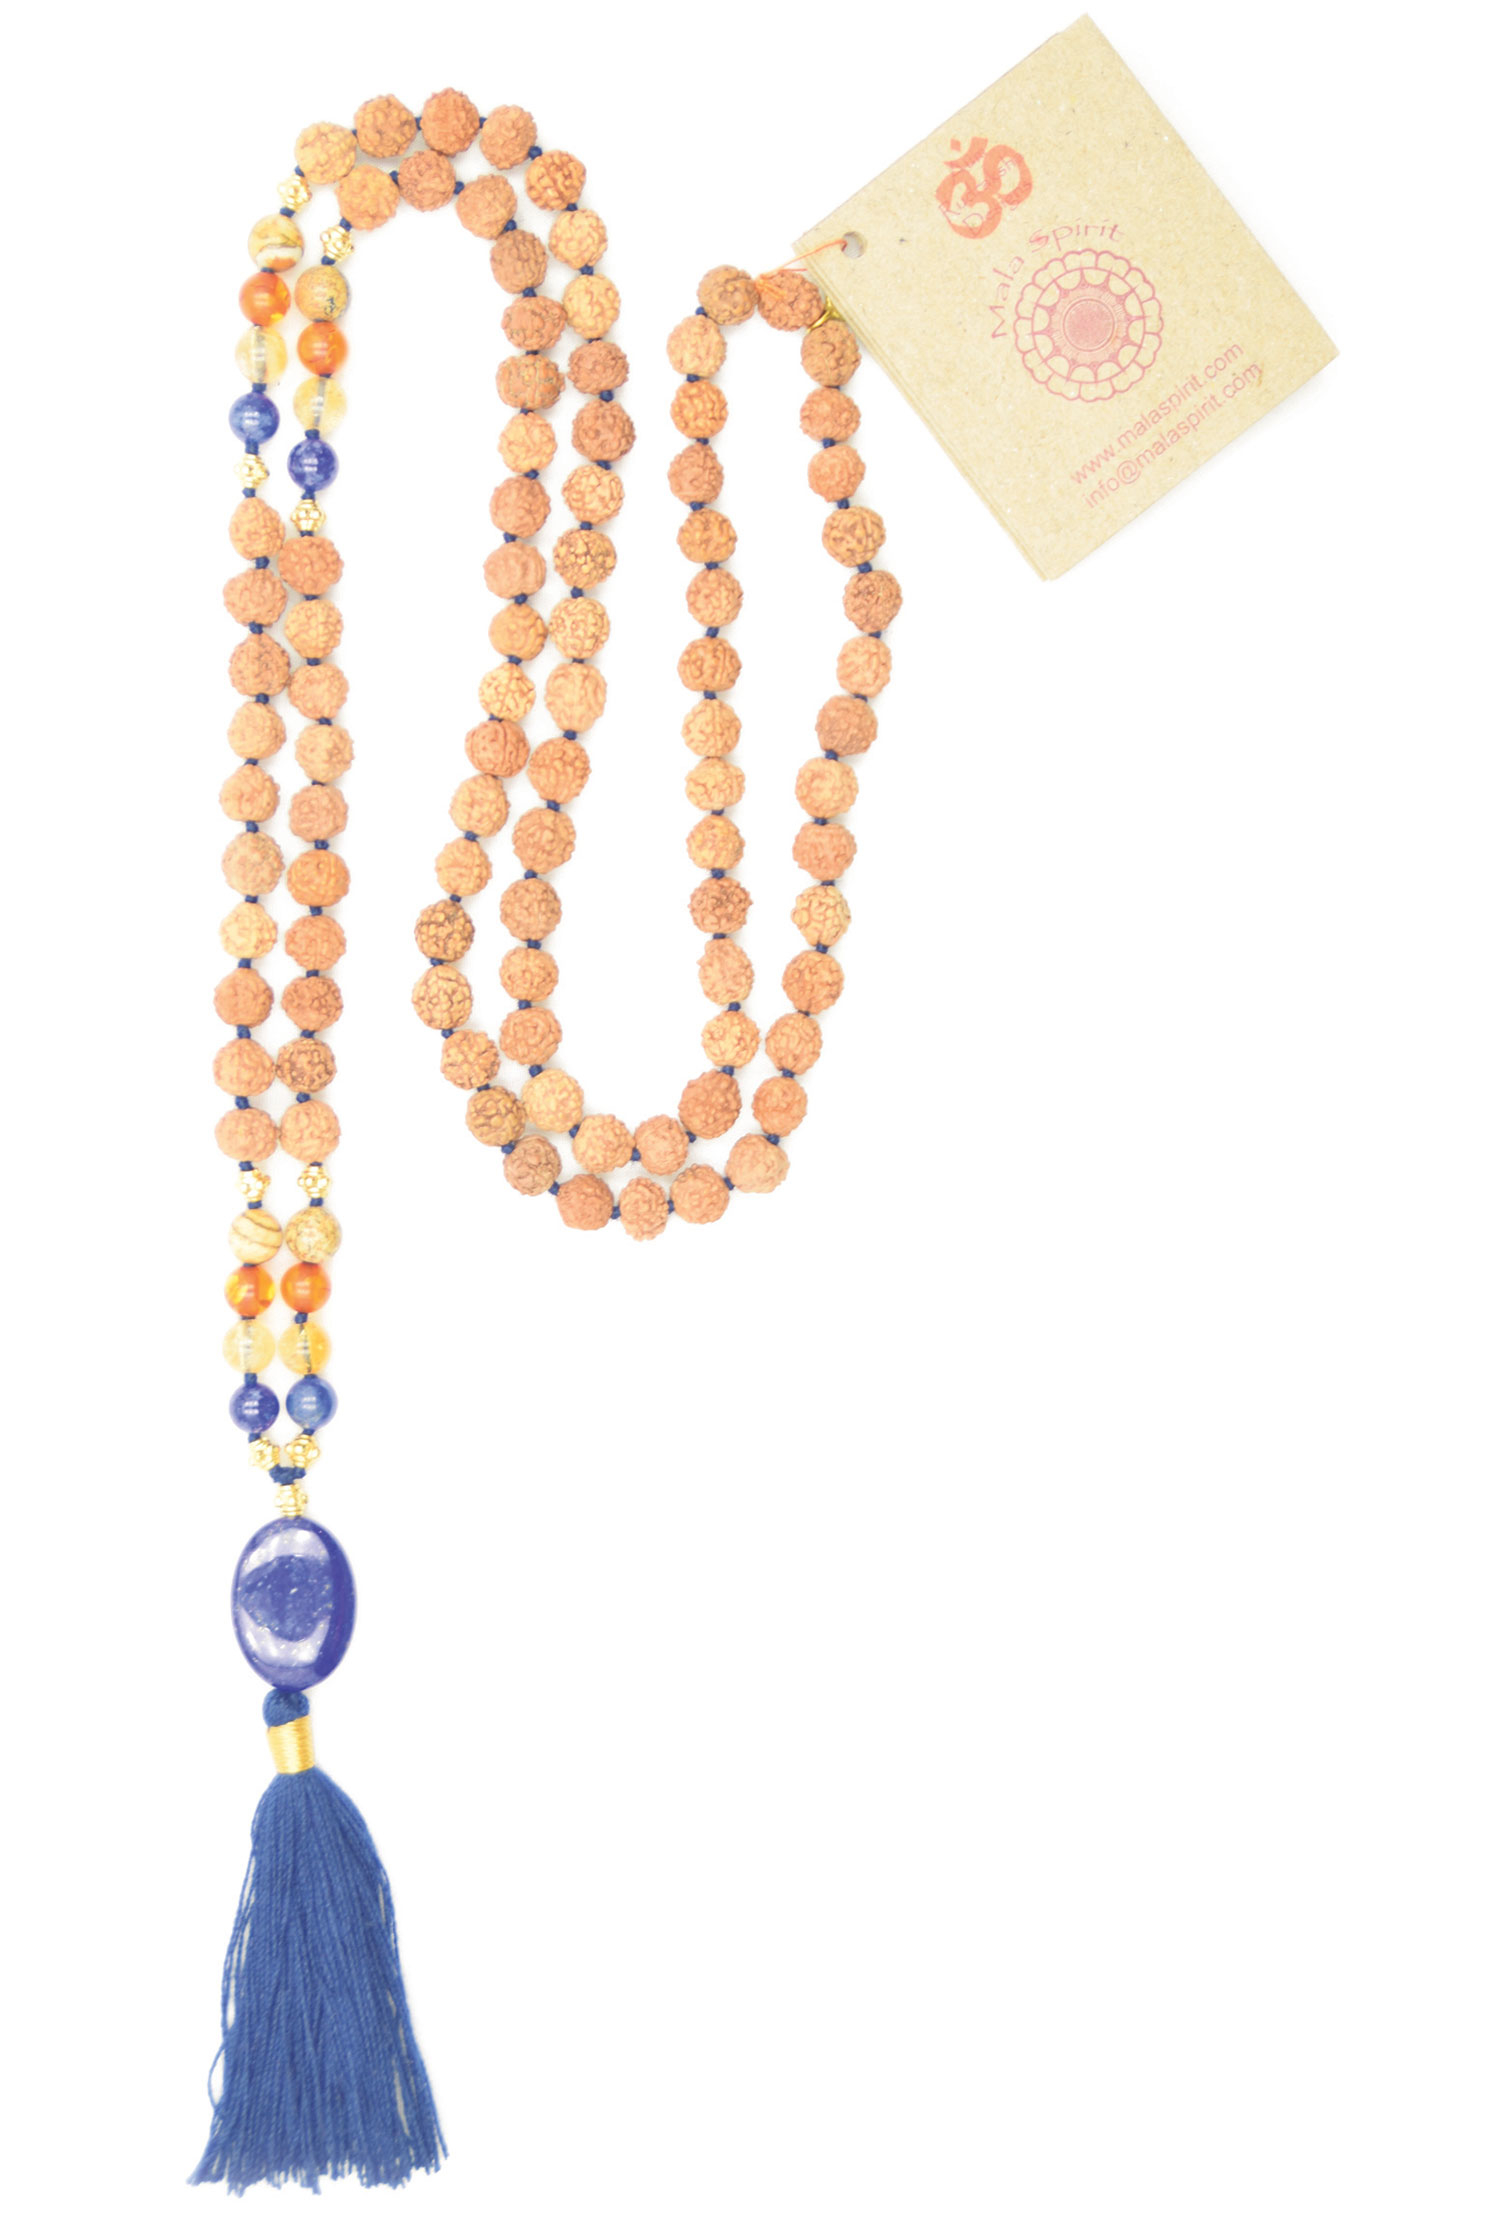 Divine Insight mala ketting